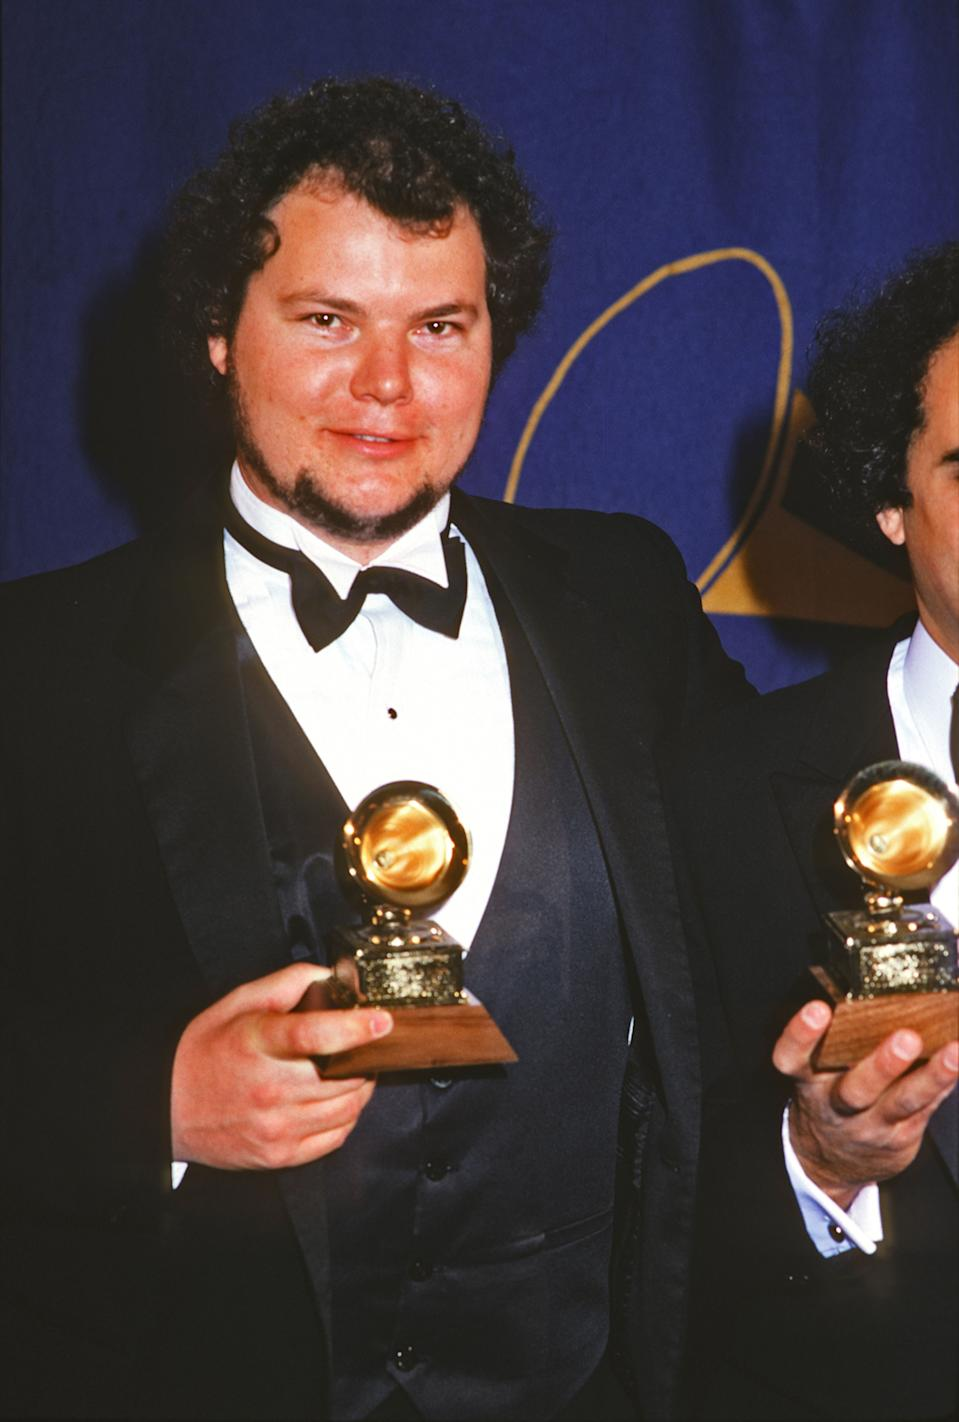 Christopher Cross poses with a Grammy Award (one of several for his song